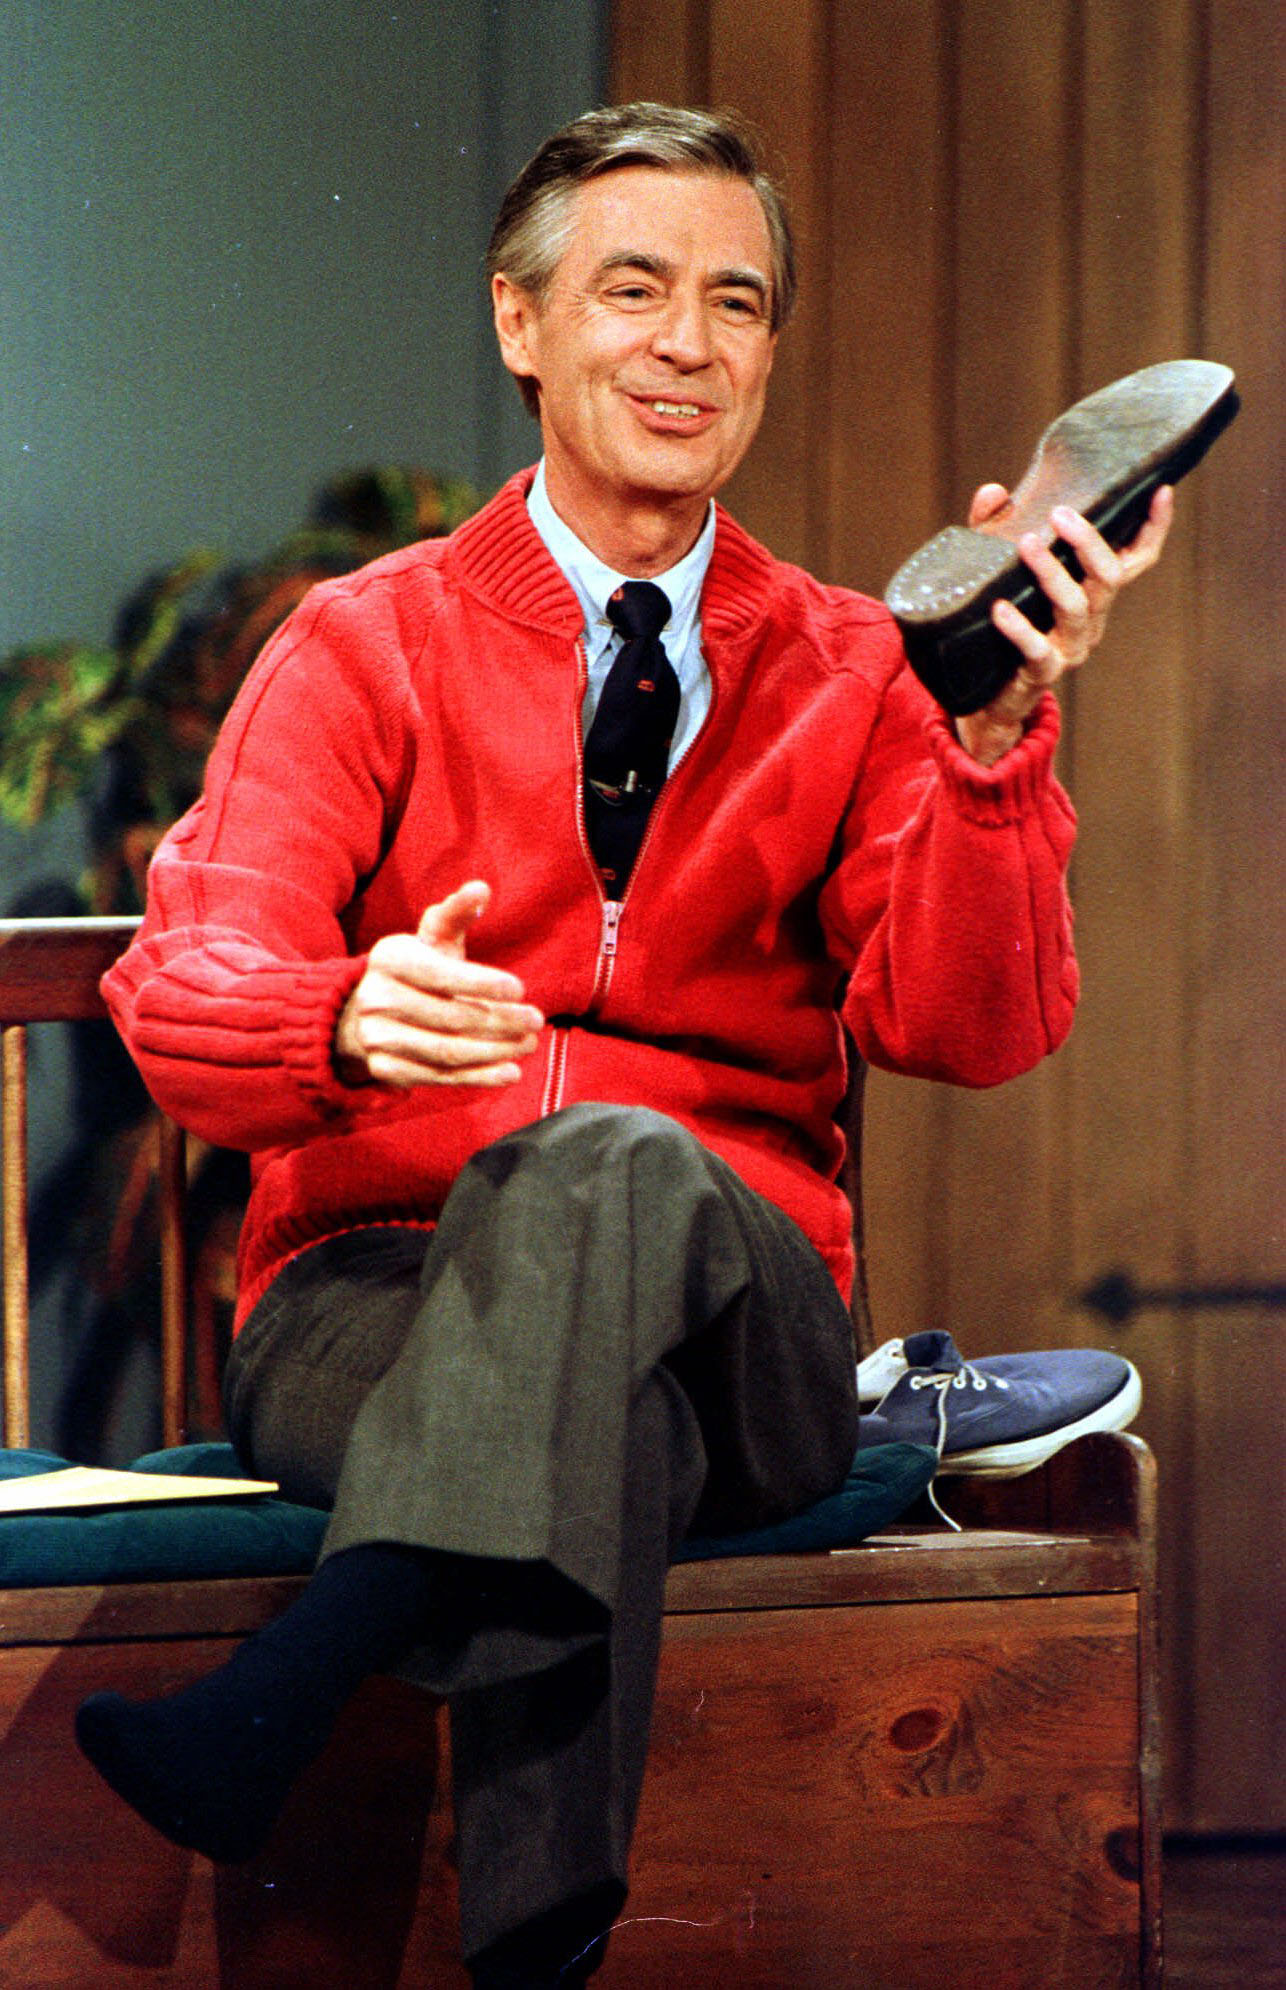 PHOTO: Fred Rogers, star of his PBS show